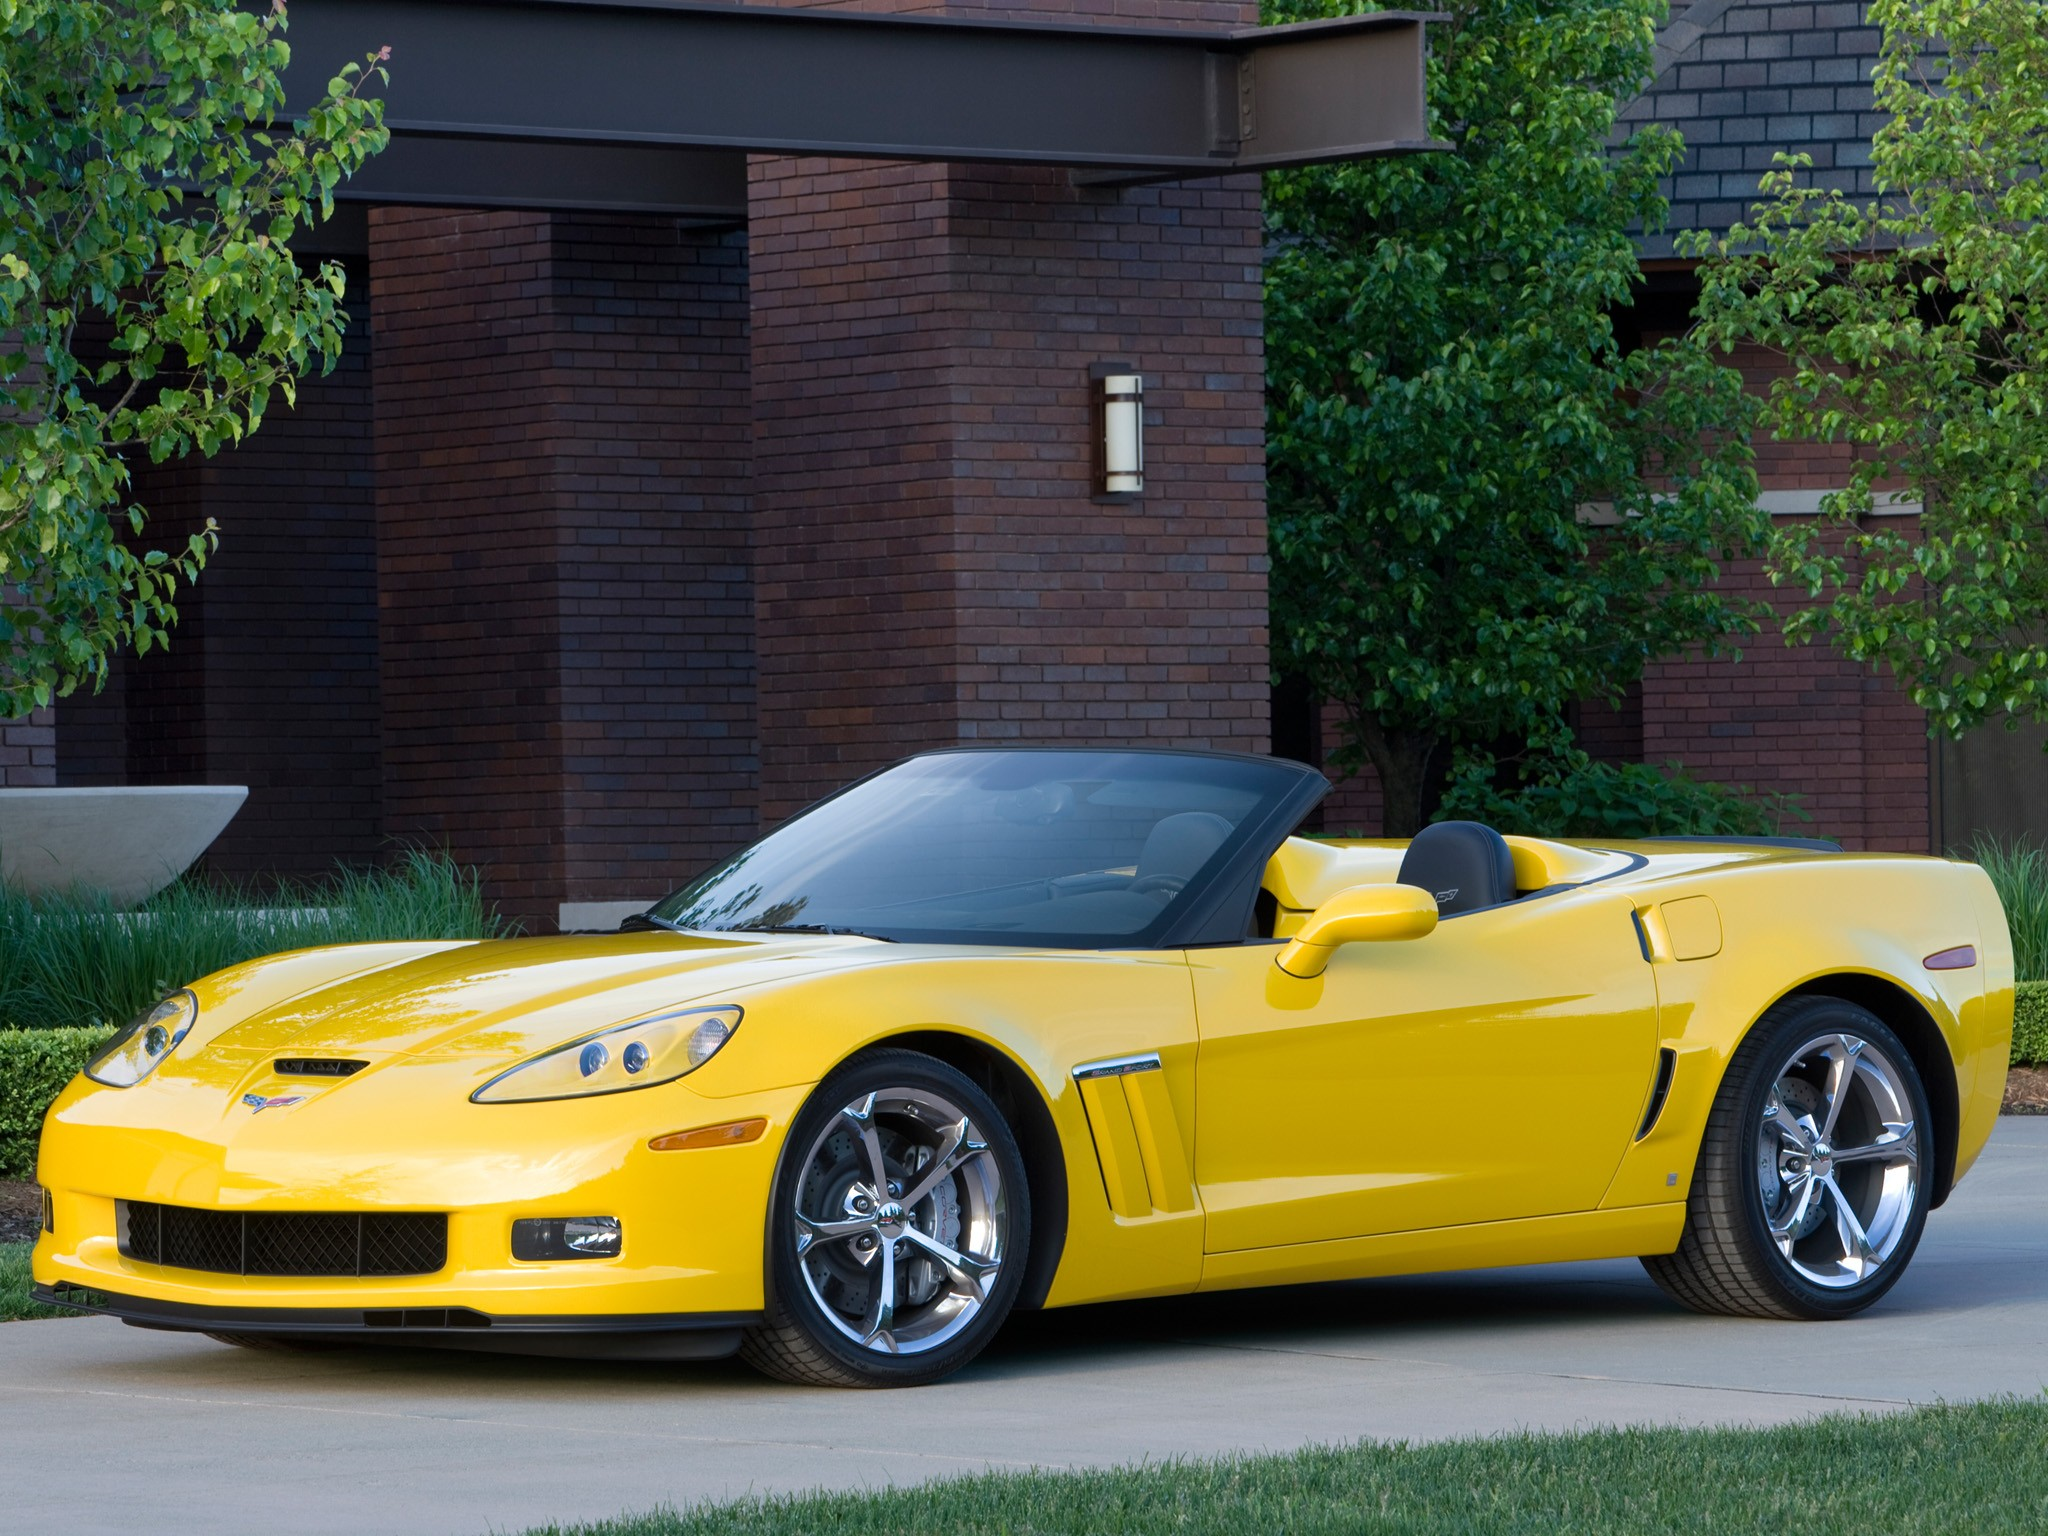 National Corvette Museum >> CHEVROLET Corvette Convertible Grand Sport - 2009, 2010, 2011, 2012, 2013 - autoevolution